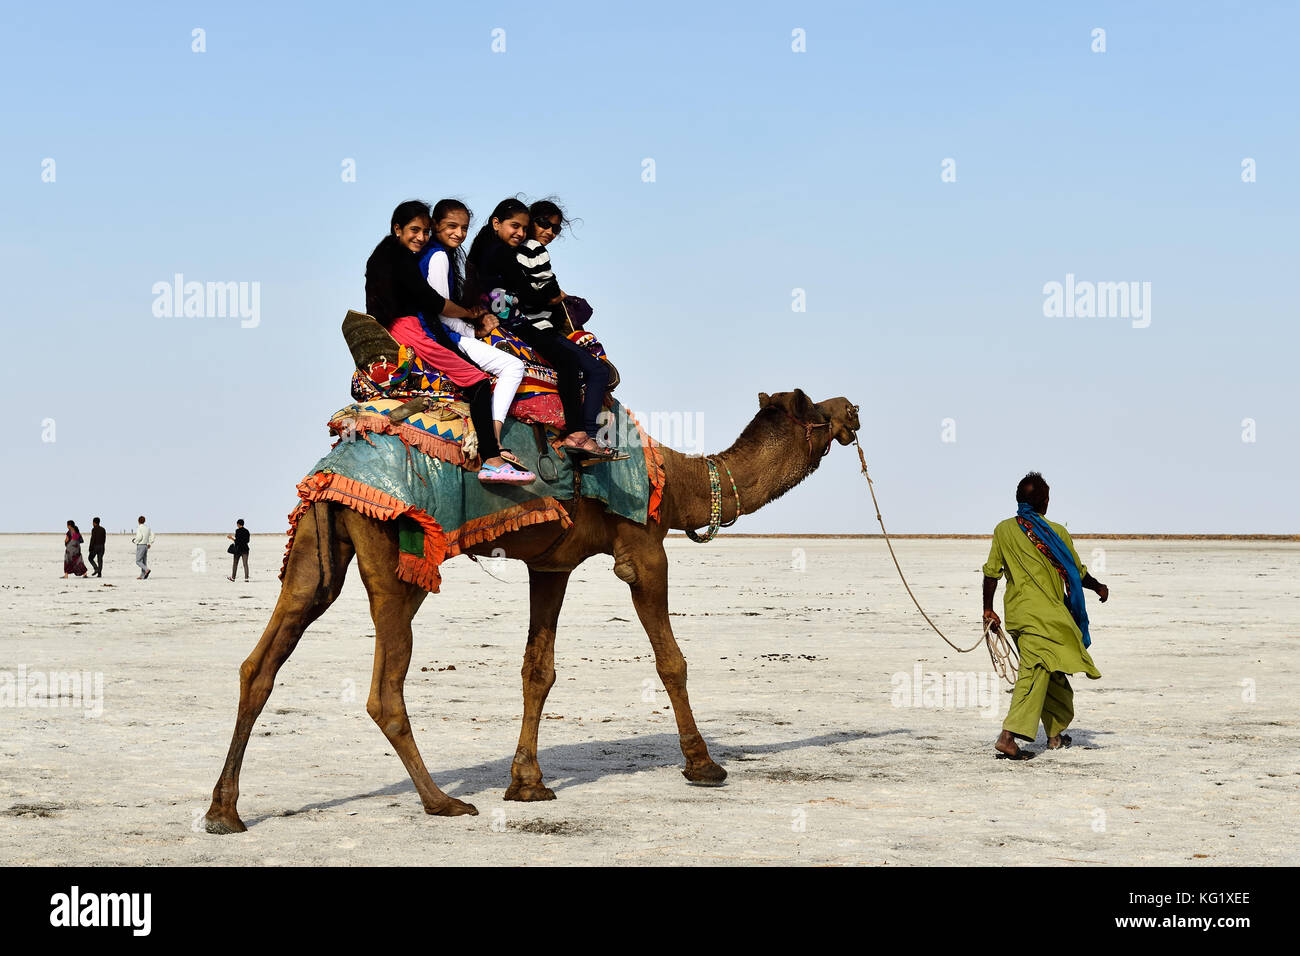 BHUJ, INDIA - 13 JANUARY 2015: Young Indian tourists on the ride on the camel on the salt desert in the state Gujarat - Stock Image